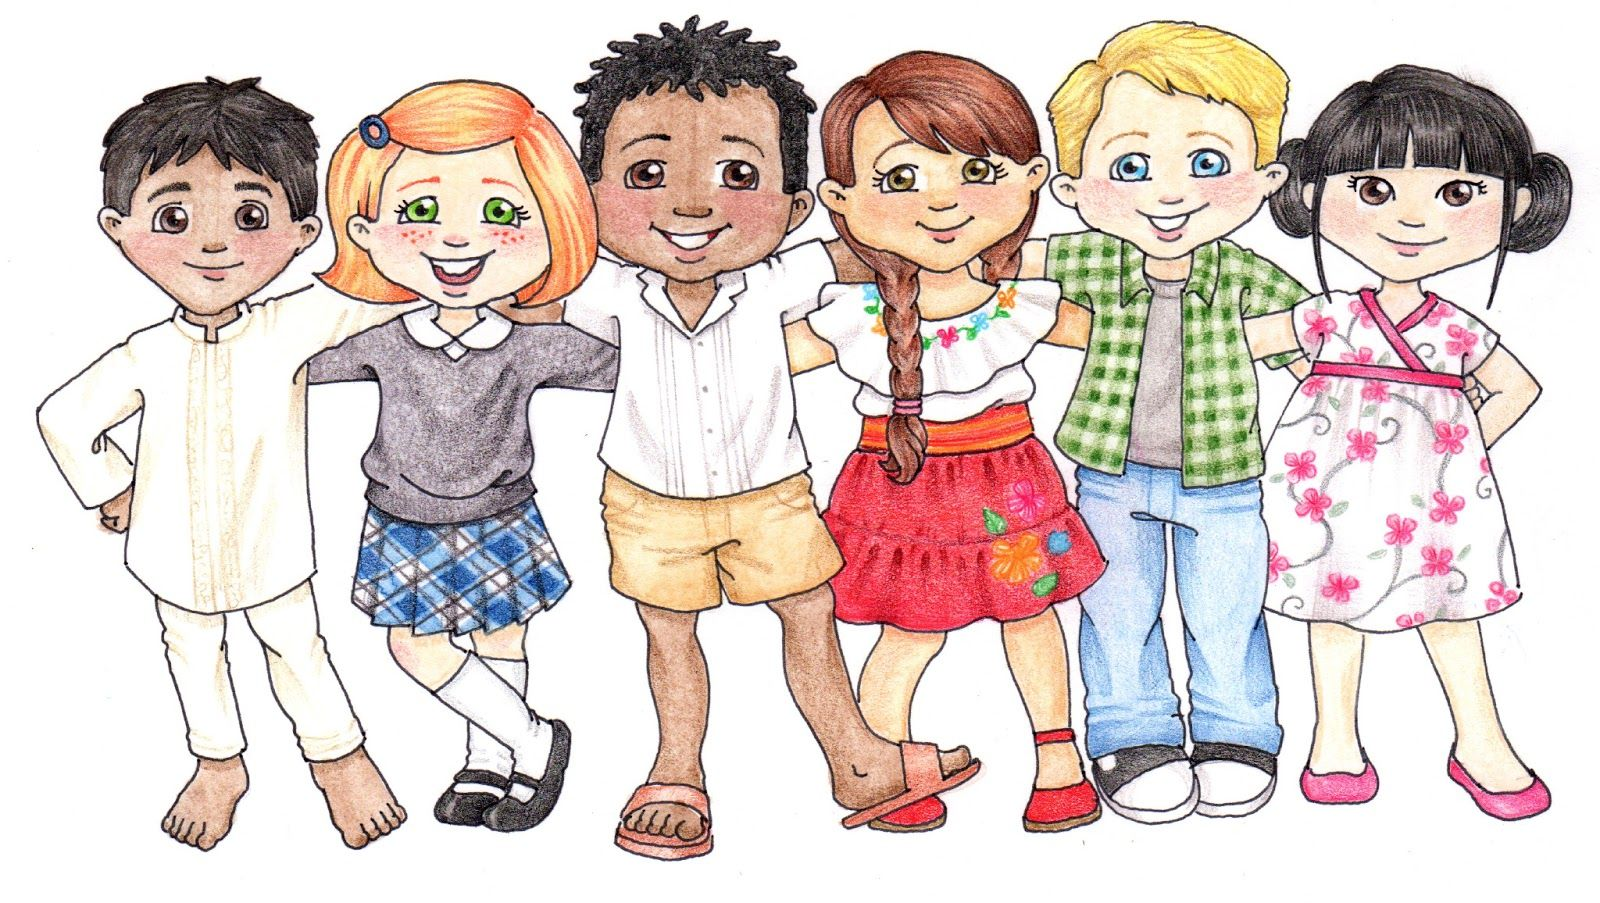 free lds clipart to color for primary children |  most about the